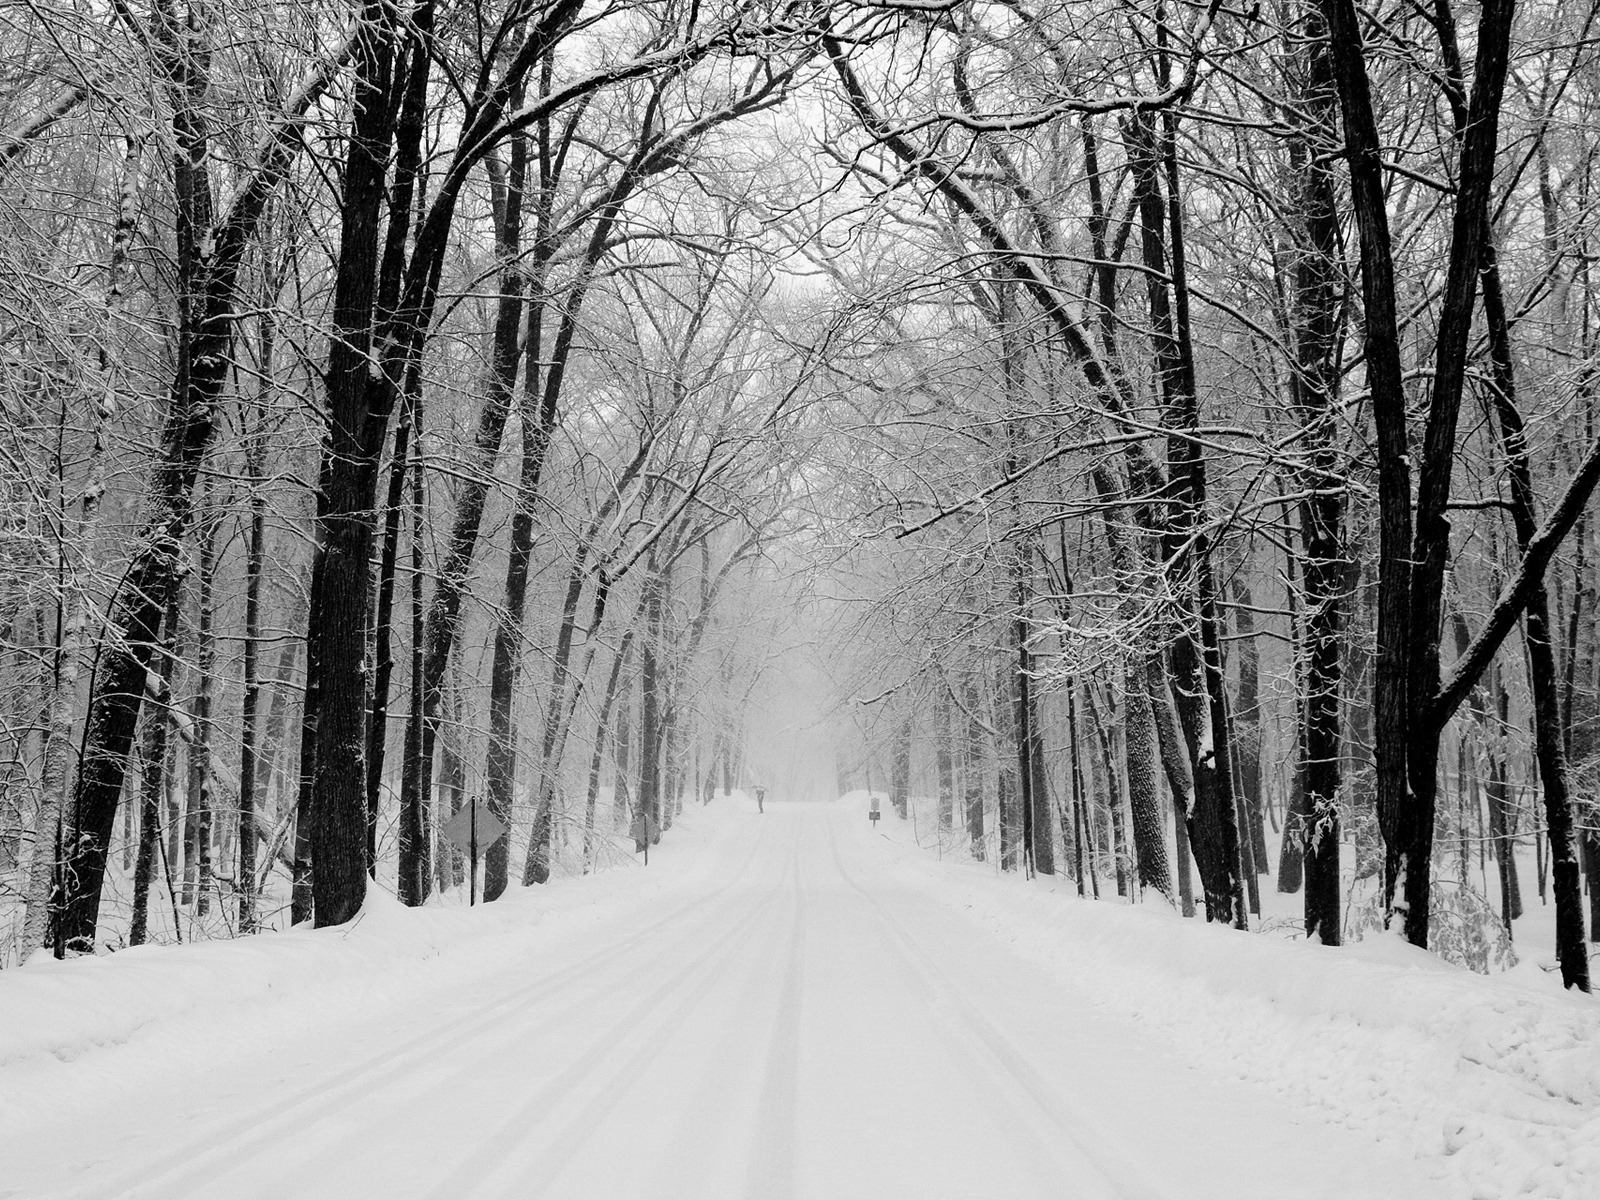 Snowy Road Wallpaper Winter Nature Wallpapers in jpg format for